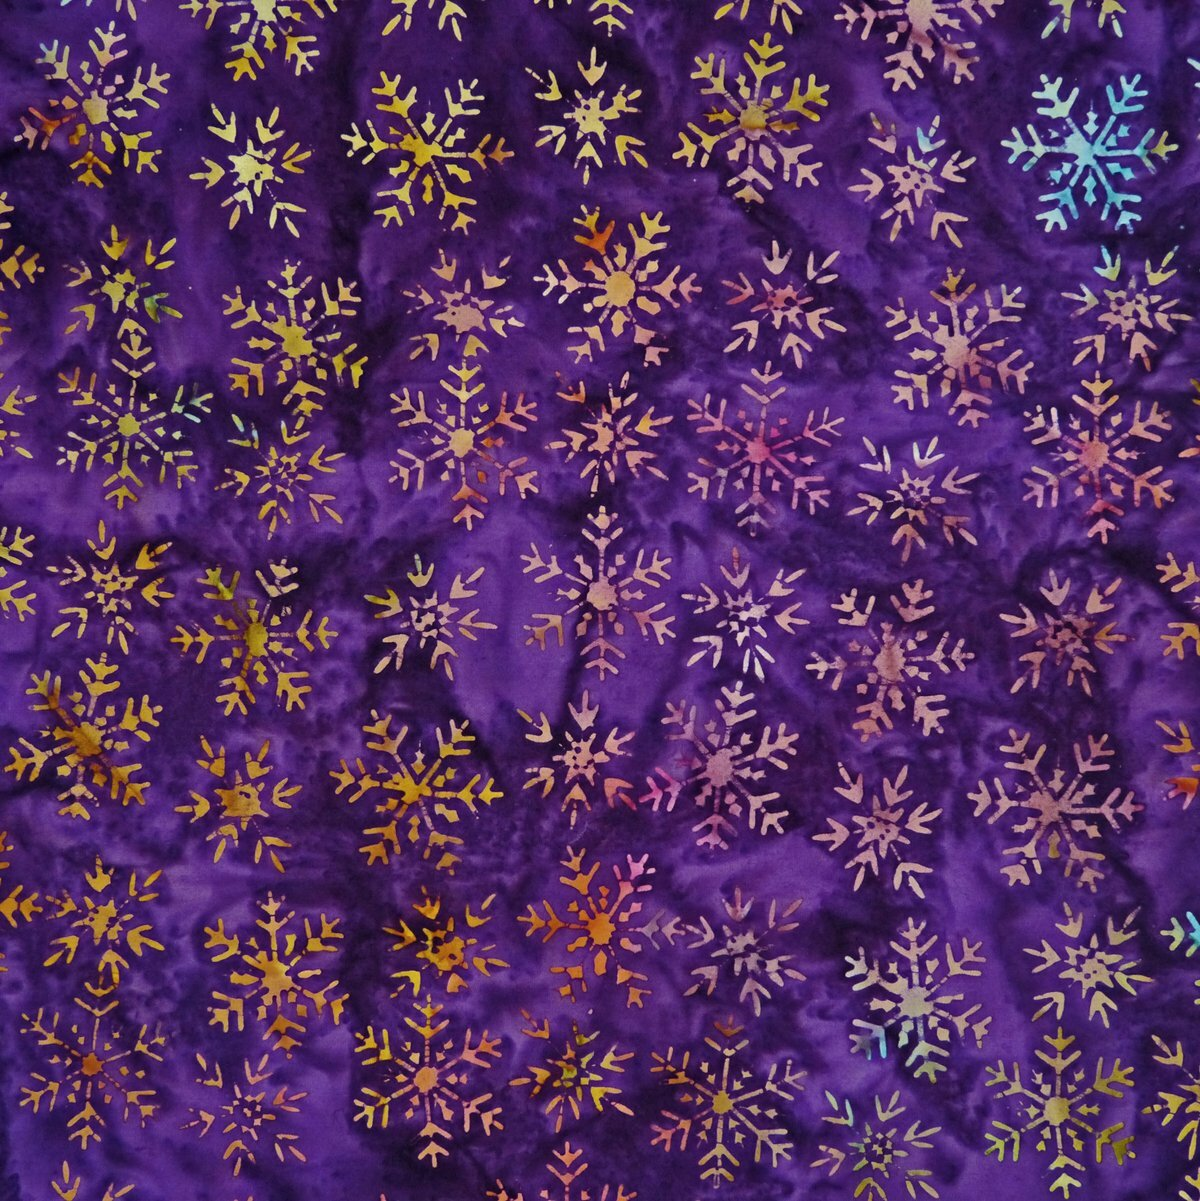 Nighttime Purple - Flicker Flair - Batik - 1/2m cut 56224